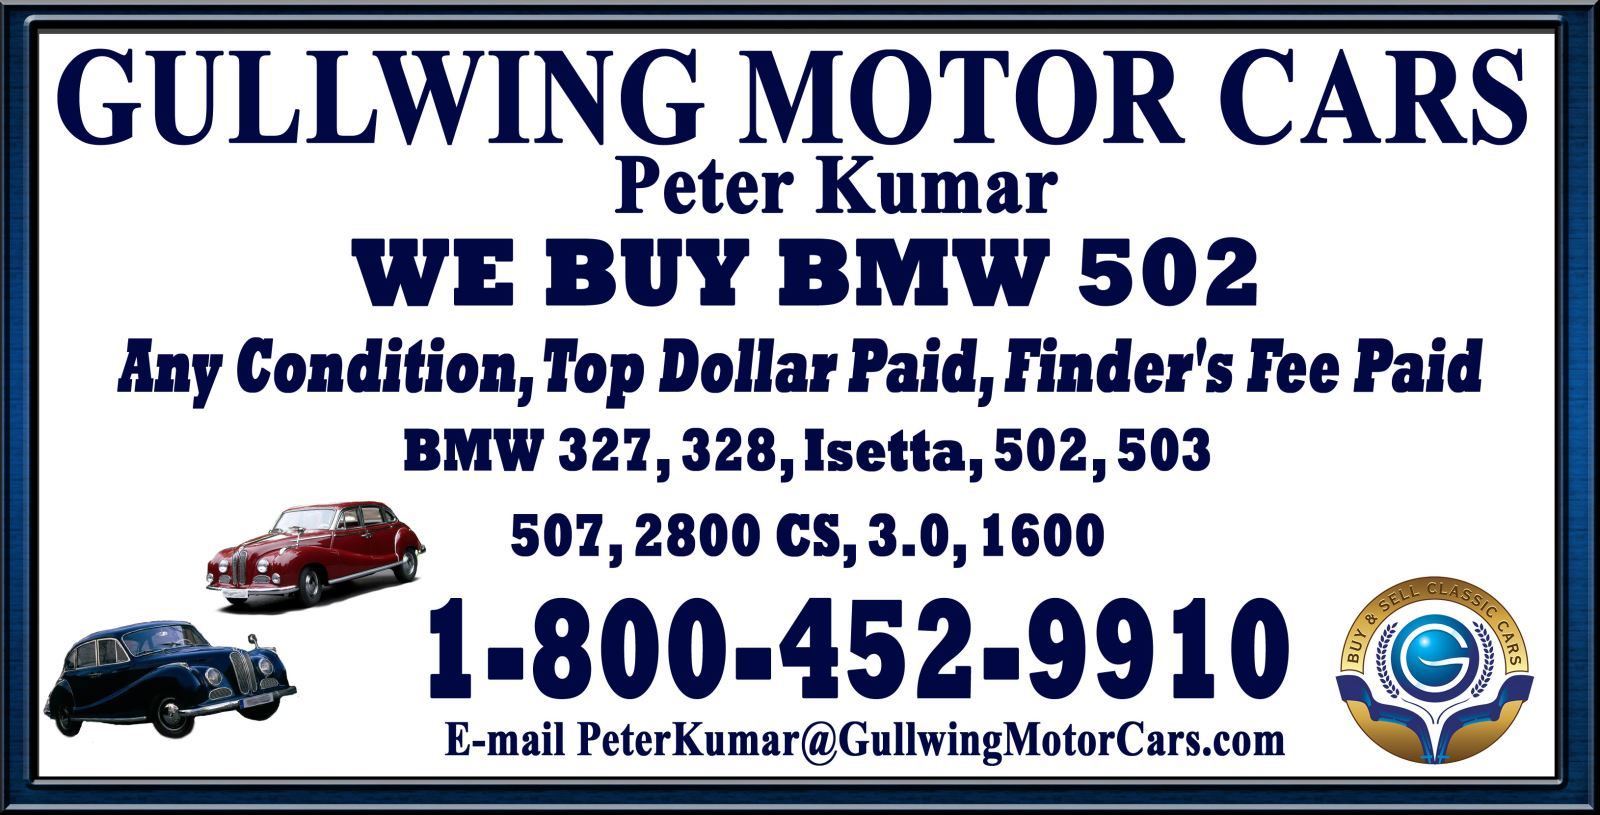 Sell Classic BMW 502 | Call Gullwing Motor if Vintage BMW 502 For Sale